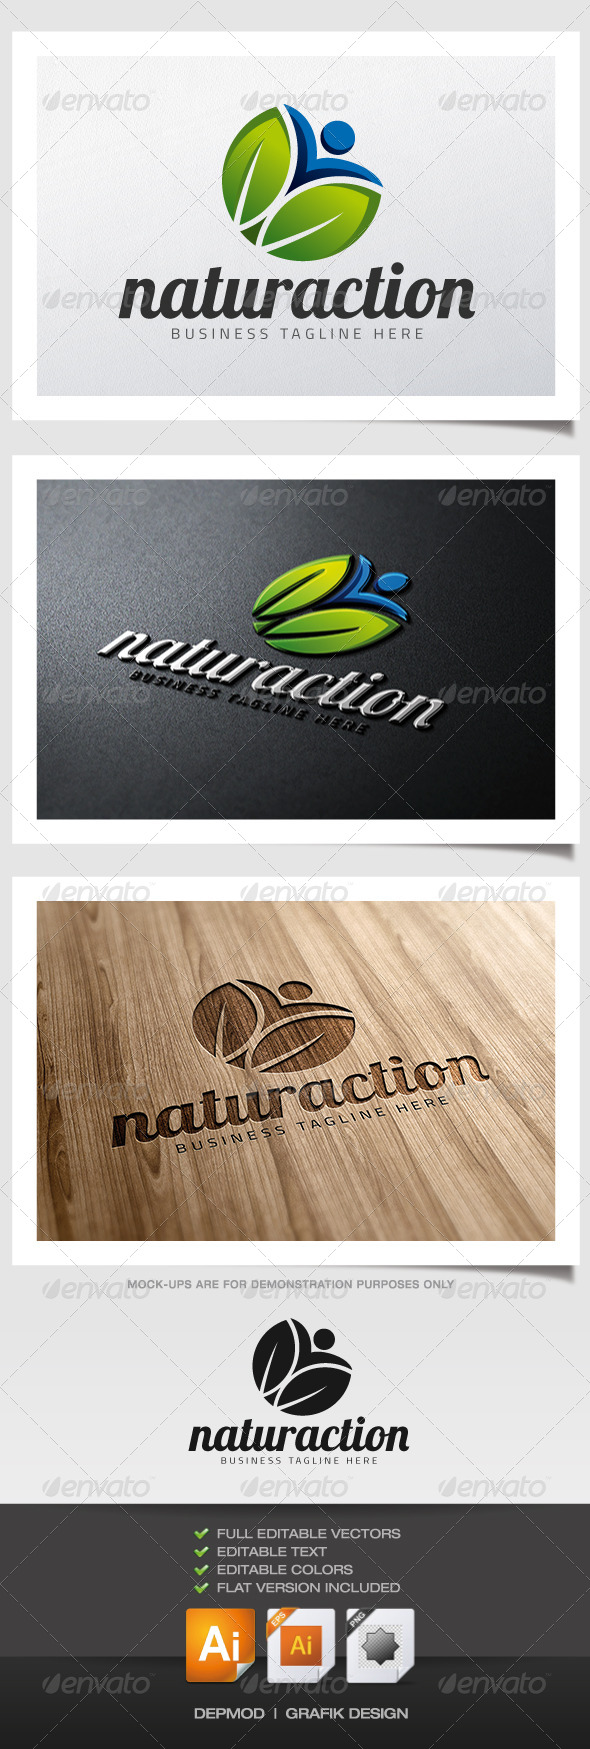 GraphicRiver Naturaction Logo 5994913